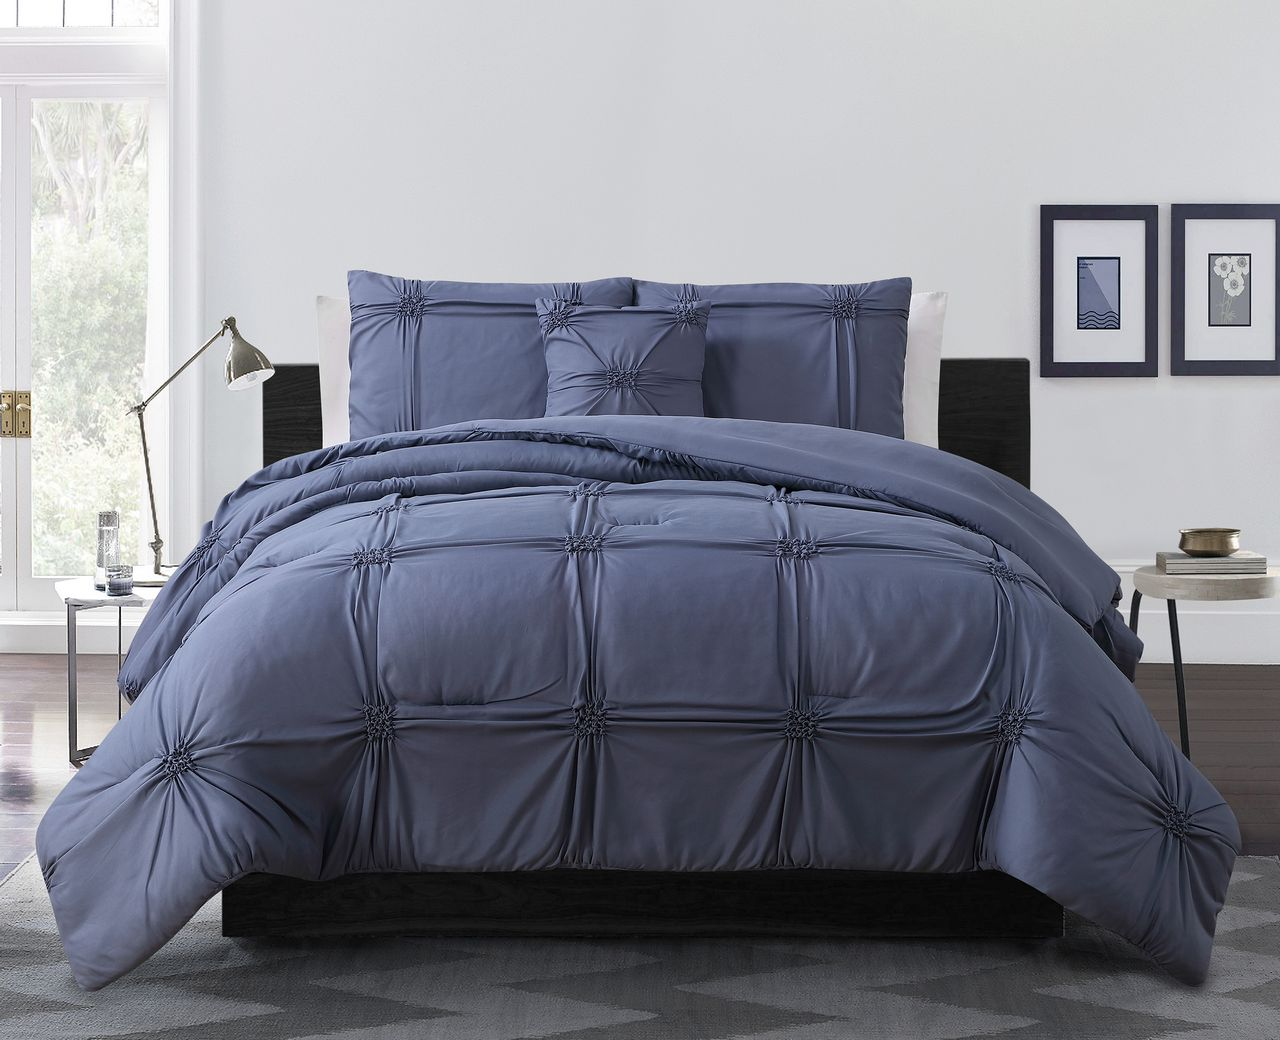 cotton beddingbedding against natural relaxed bedding pin comforters store skin is soft setsdenim denim so comforter linen your bed secret